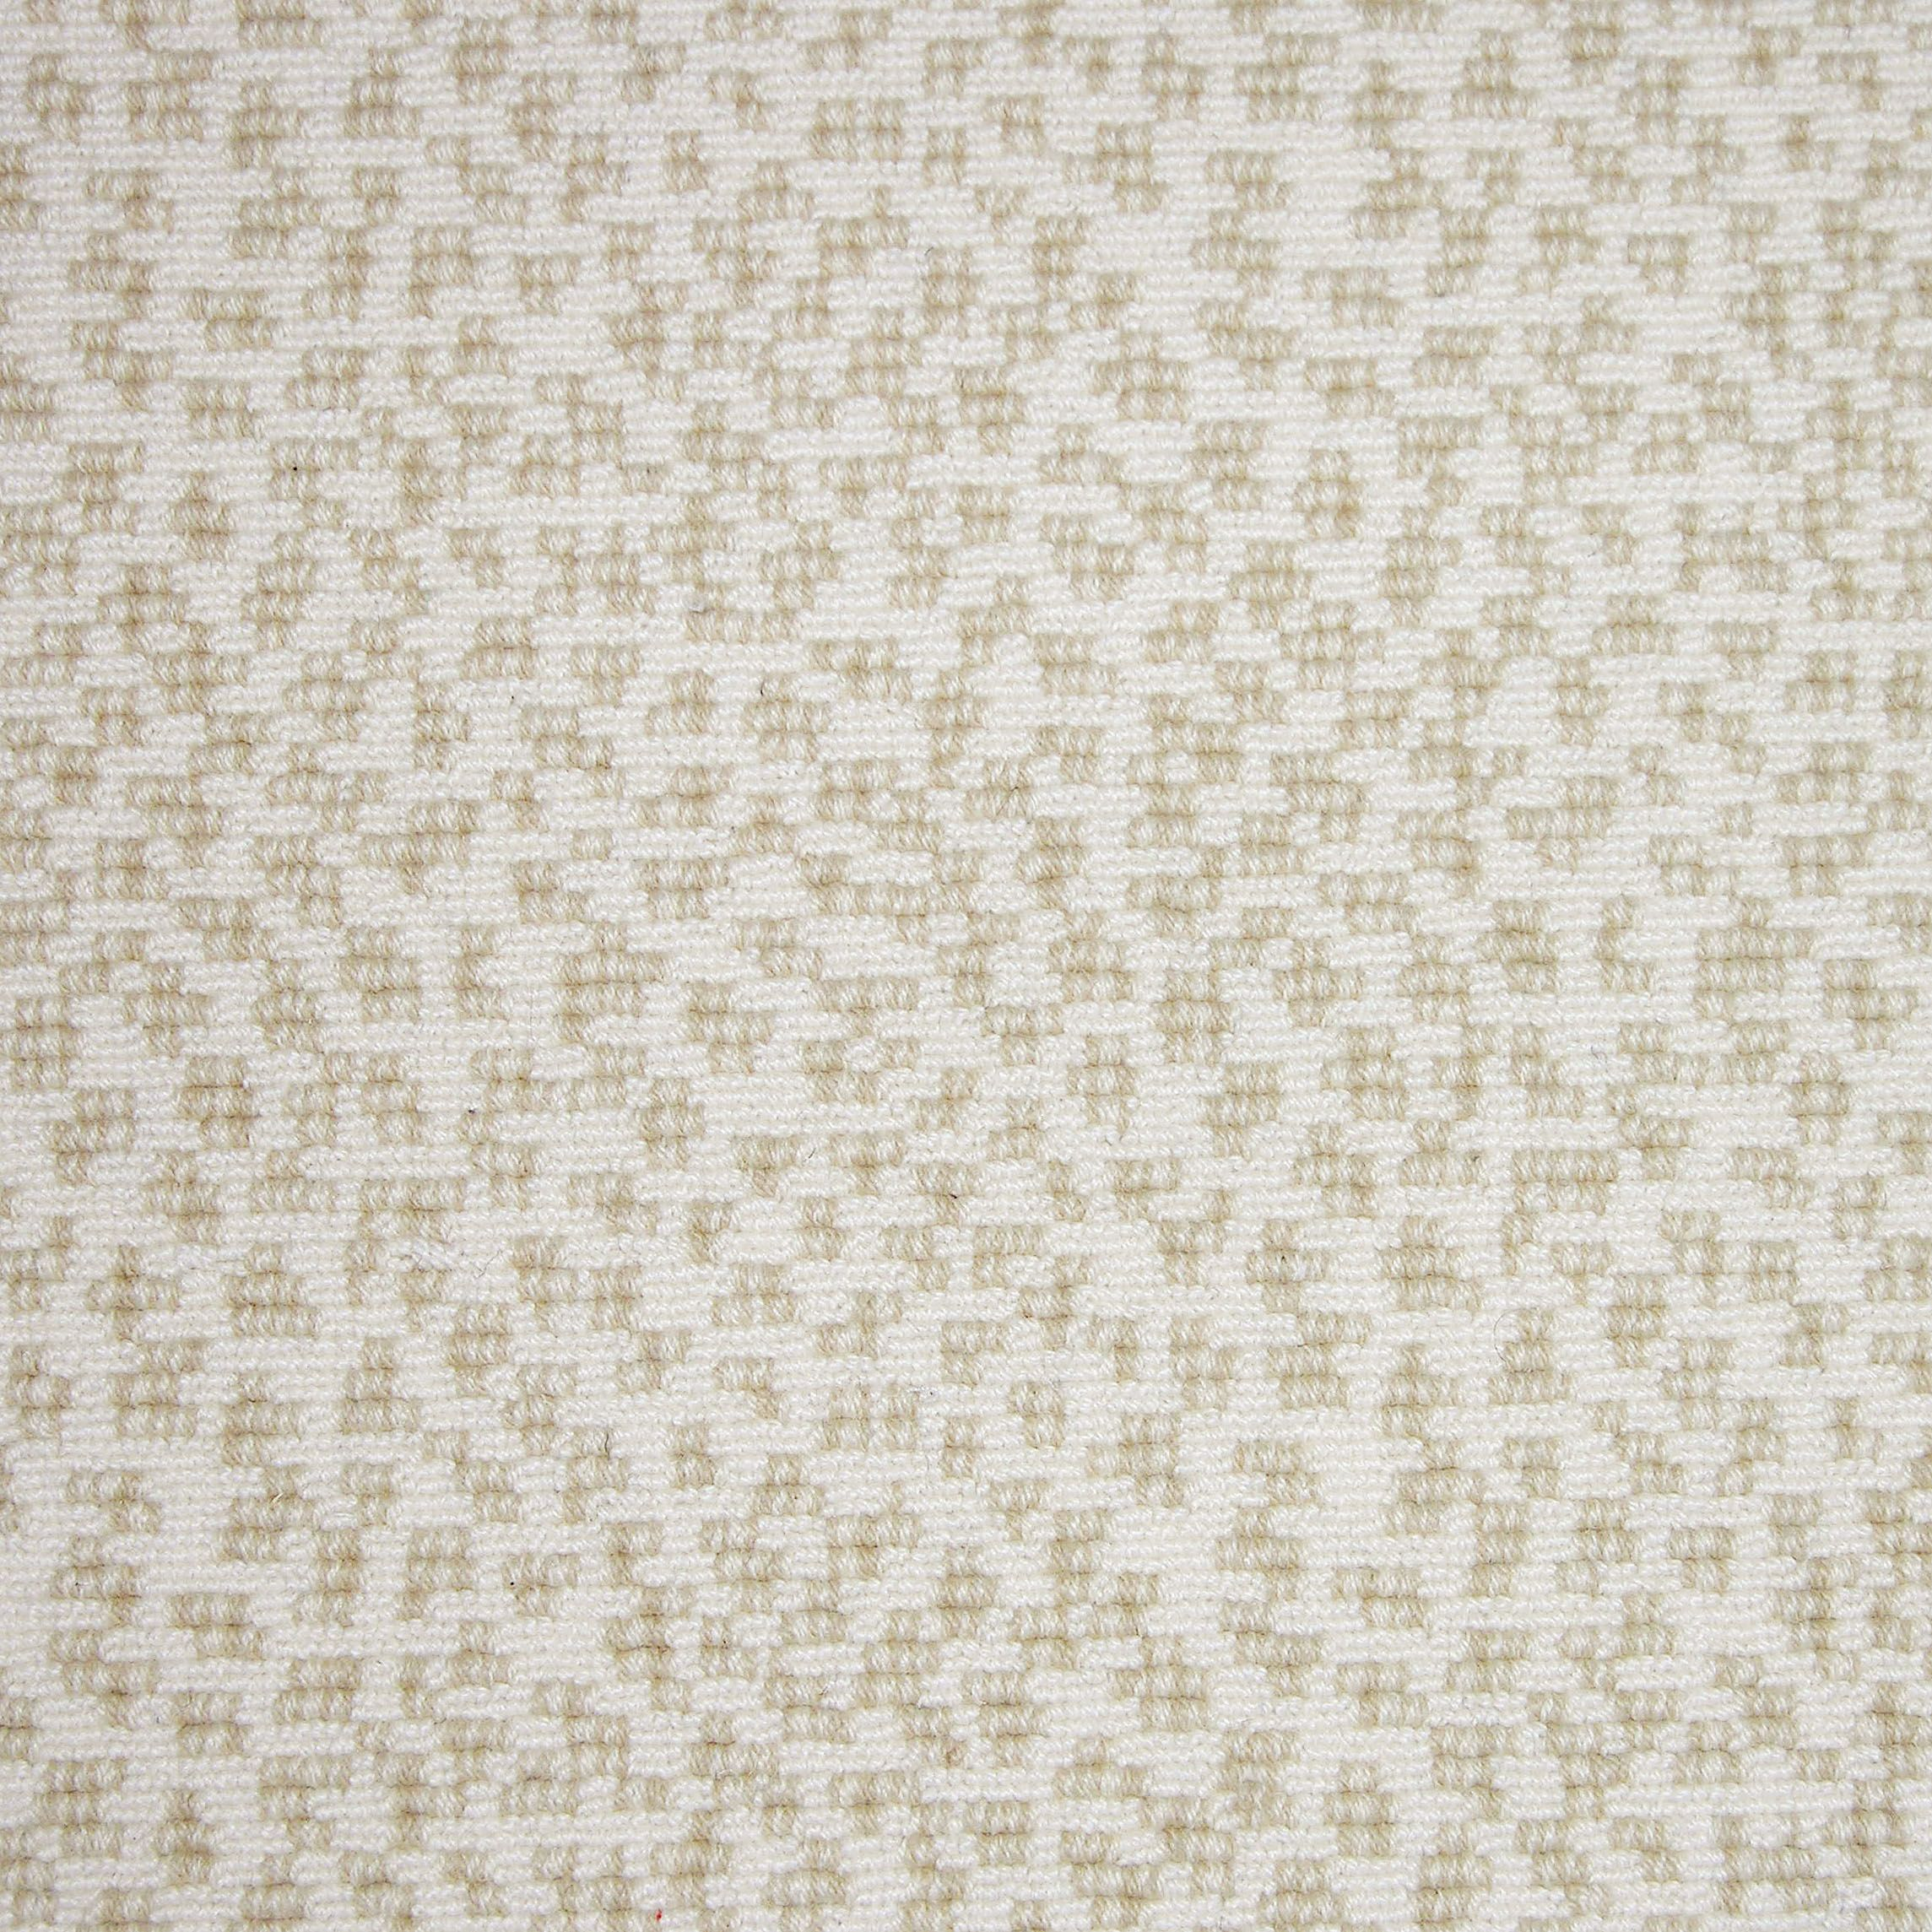 Kubra Boucle Collection Stark Carpet Sanborn